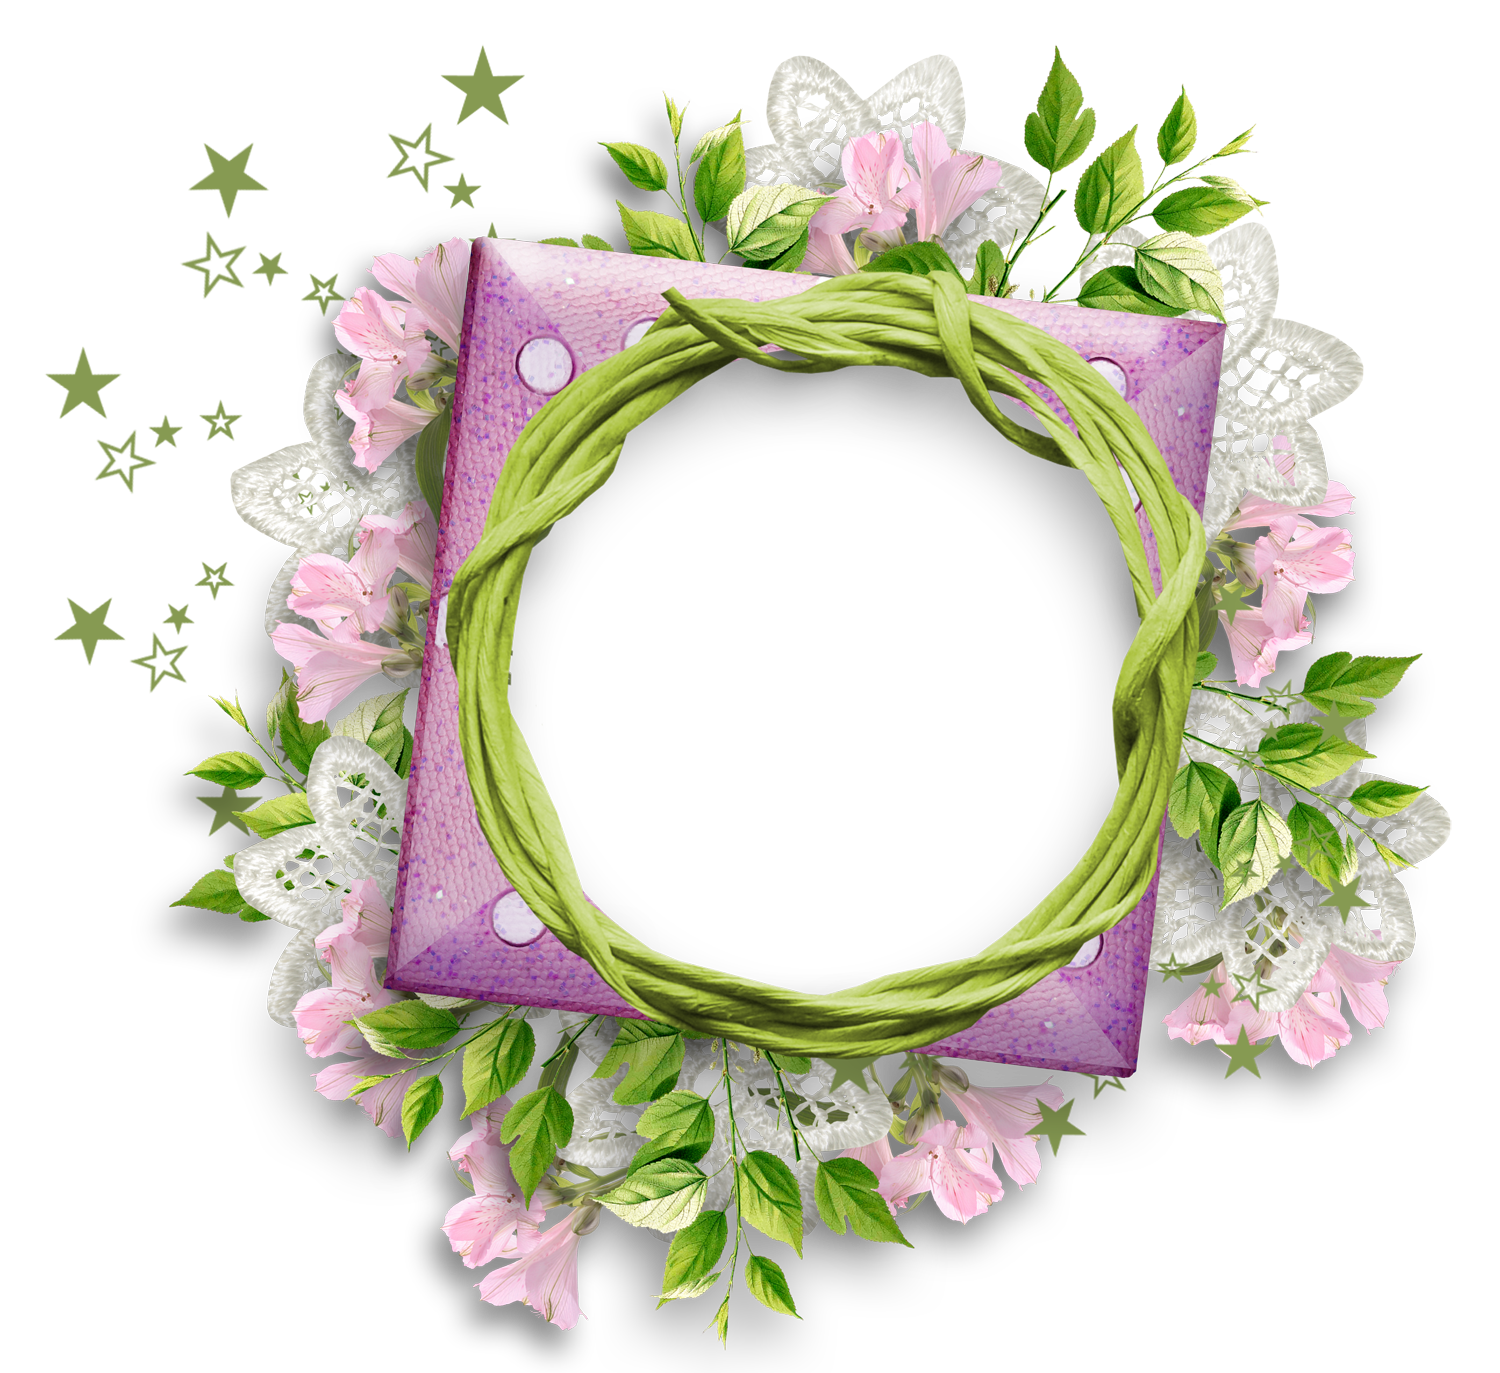 Death Photo Flower Frames Png images collection for free download.